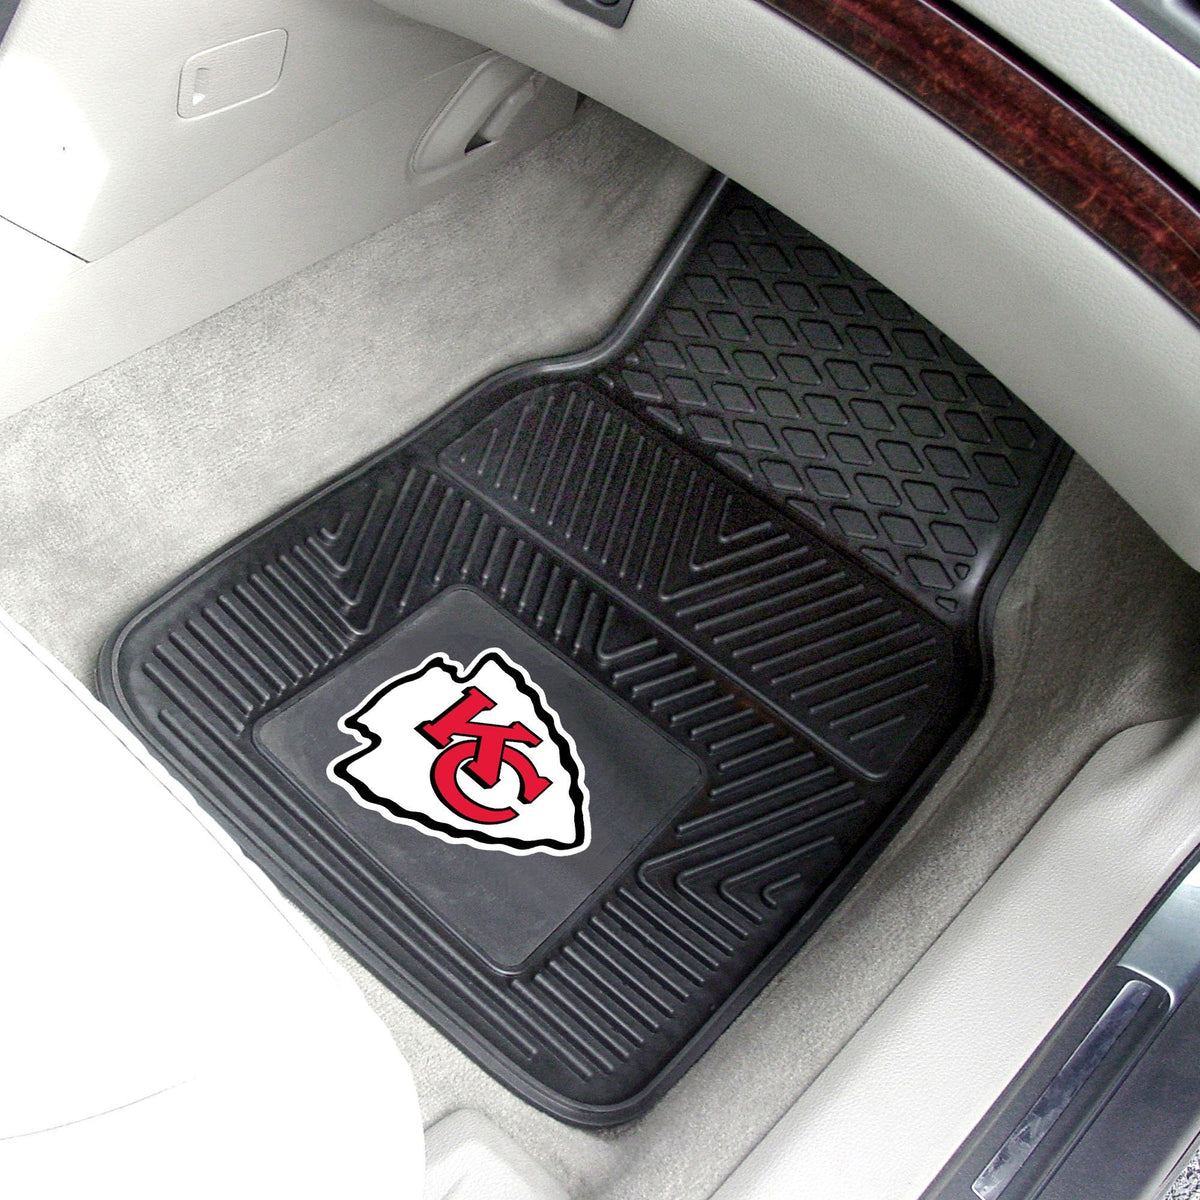 NFL - 2-pc Vinyl Car Mat Set NFL Mats, Front Car Mats, 2-pc Vinyl Car Mat Set, NFL, Auto Fan Mats Kansas City Chiefs